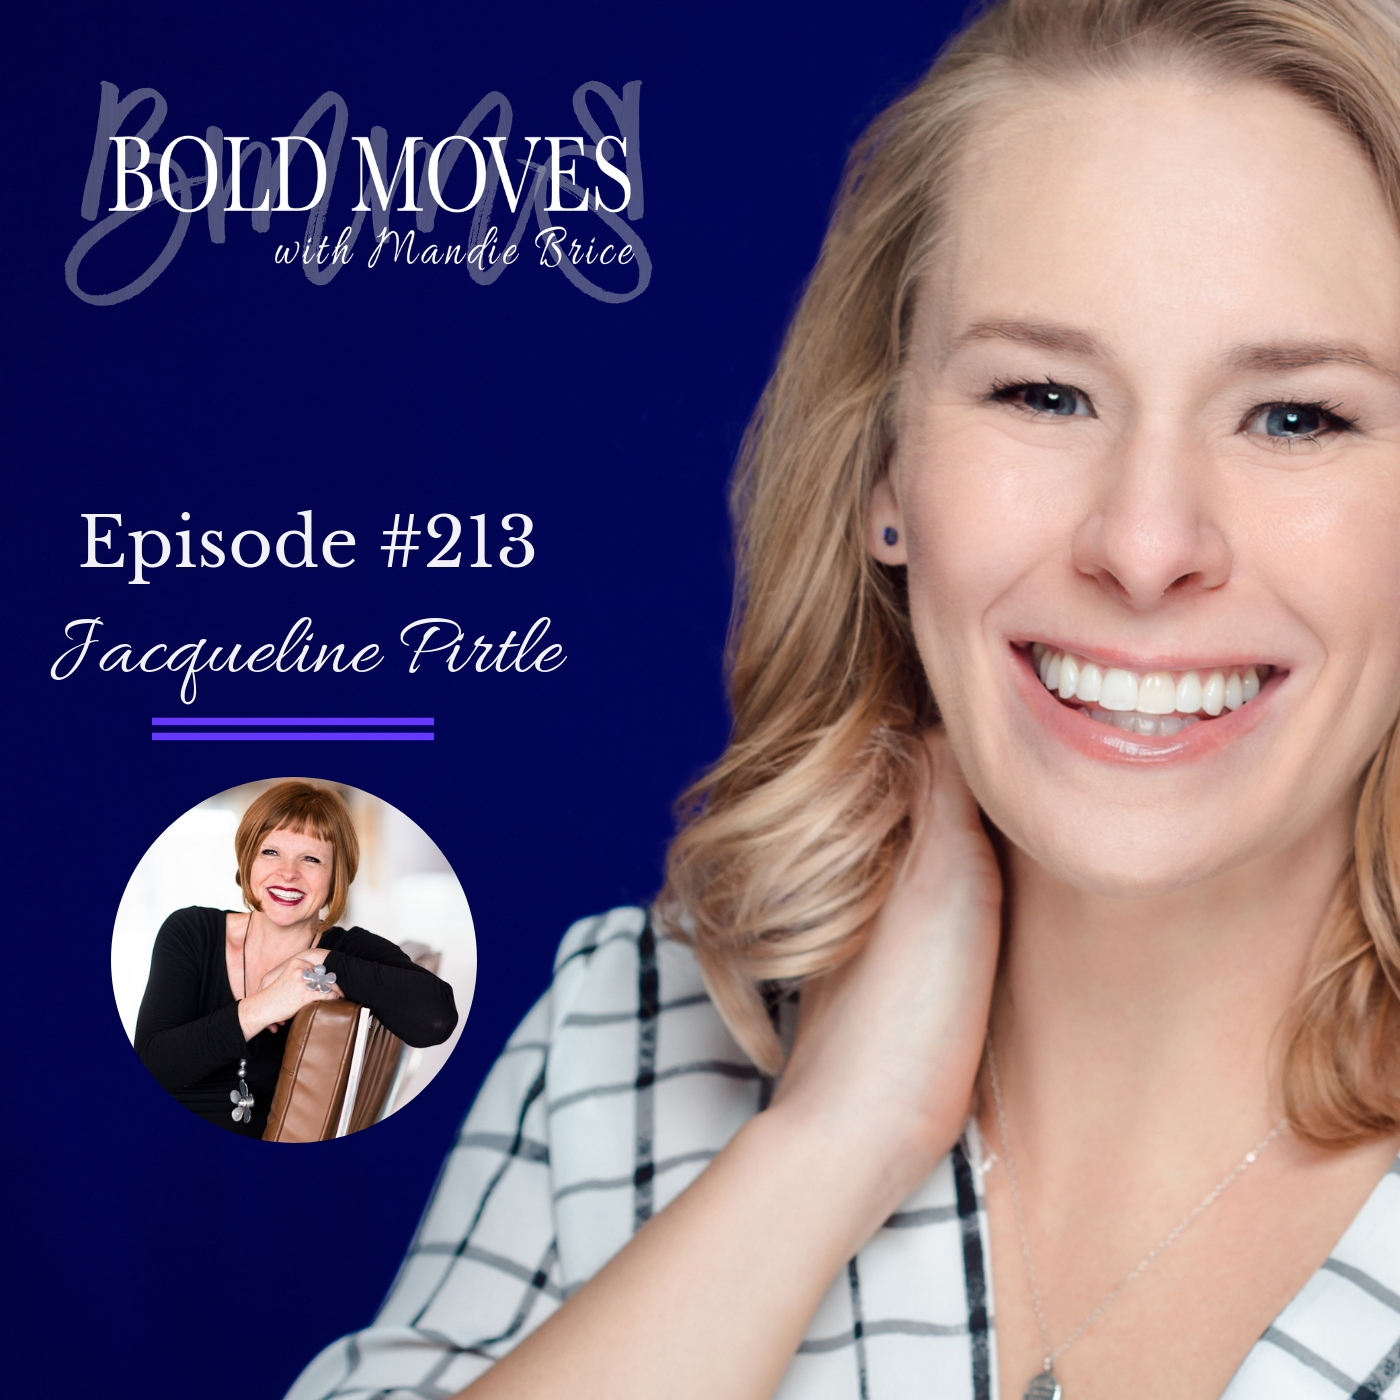 Bold Moves Podcast Episode 213 Jacqueline Pirtle - Mandie Brice